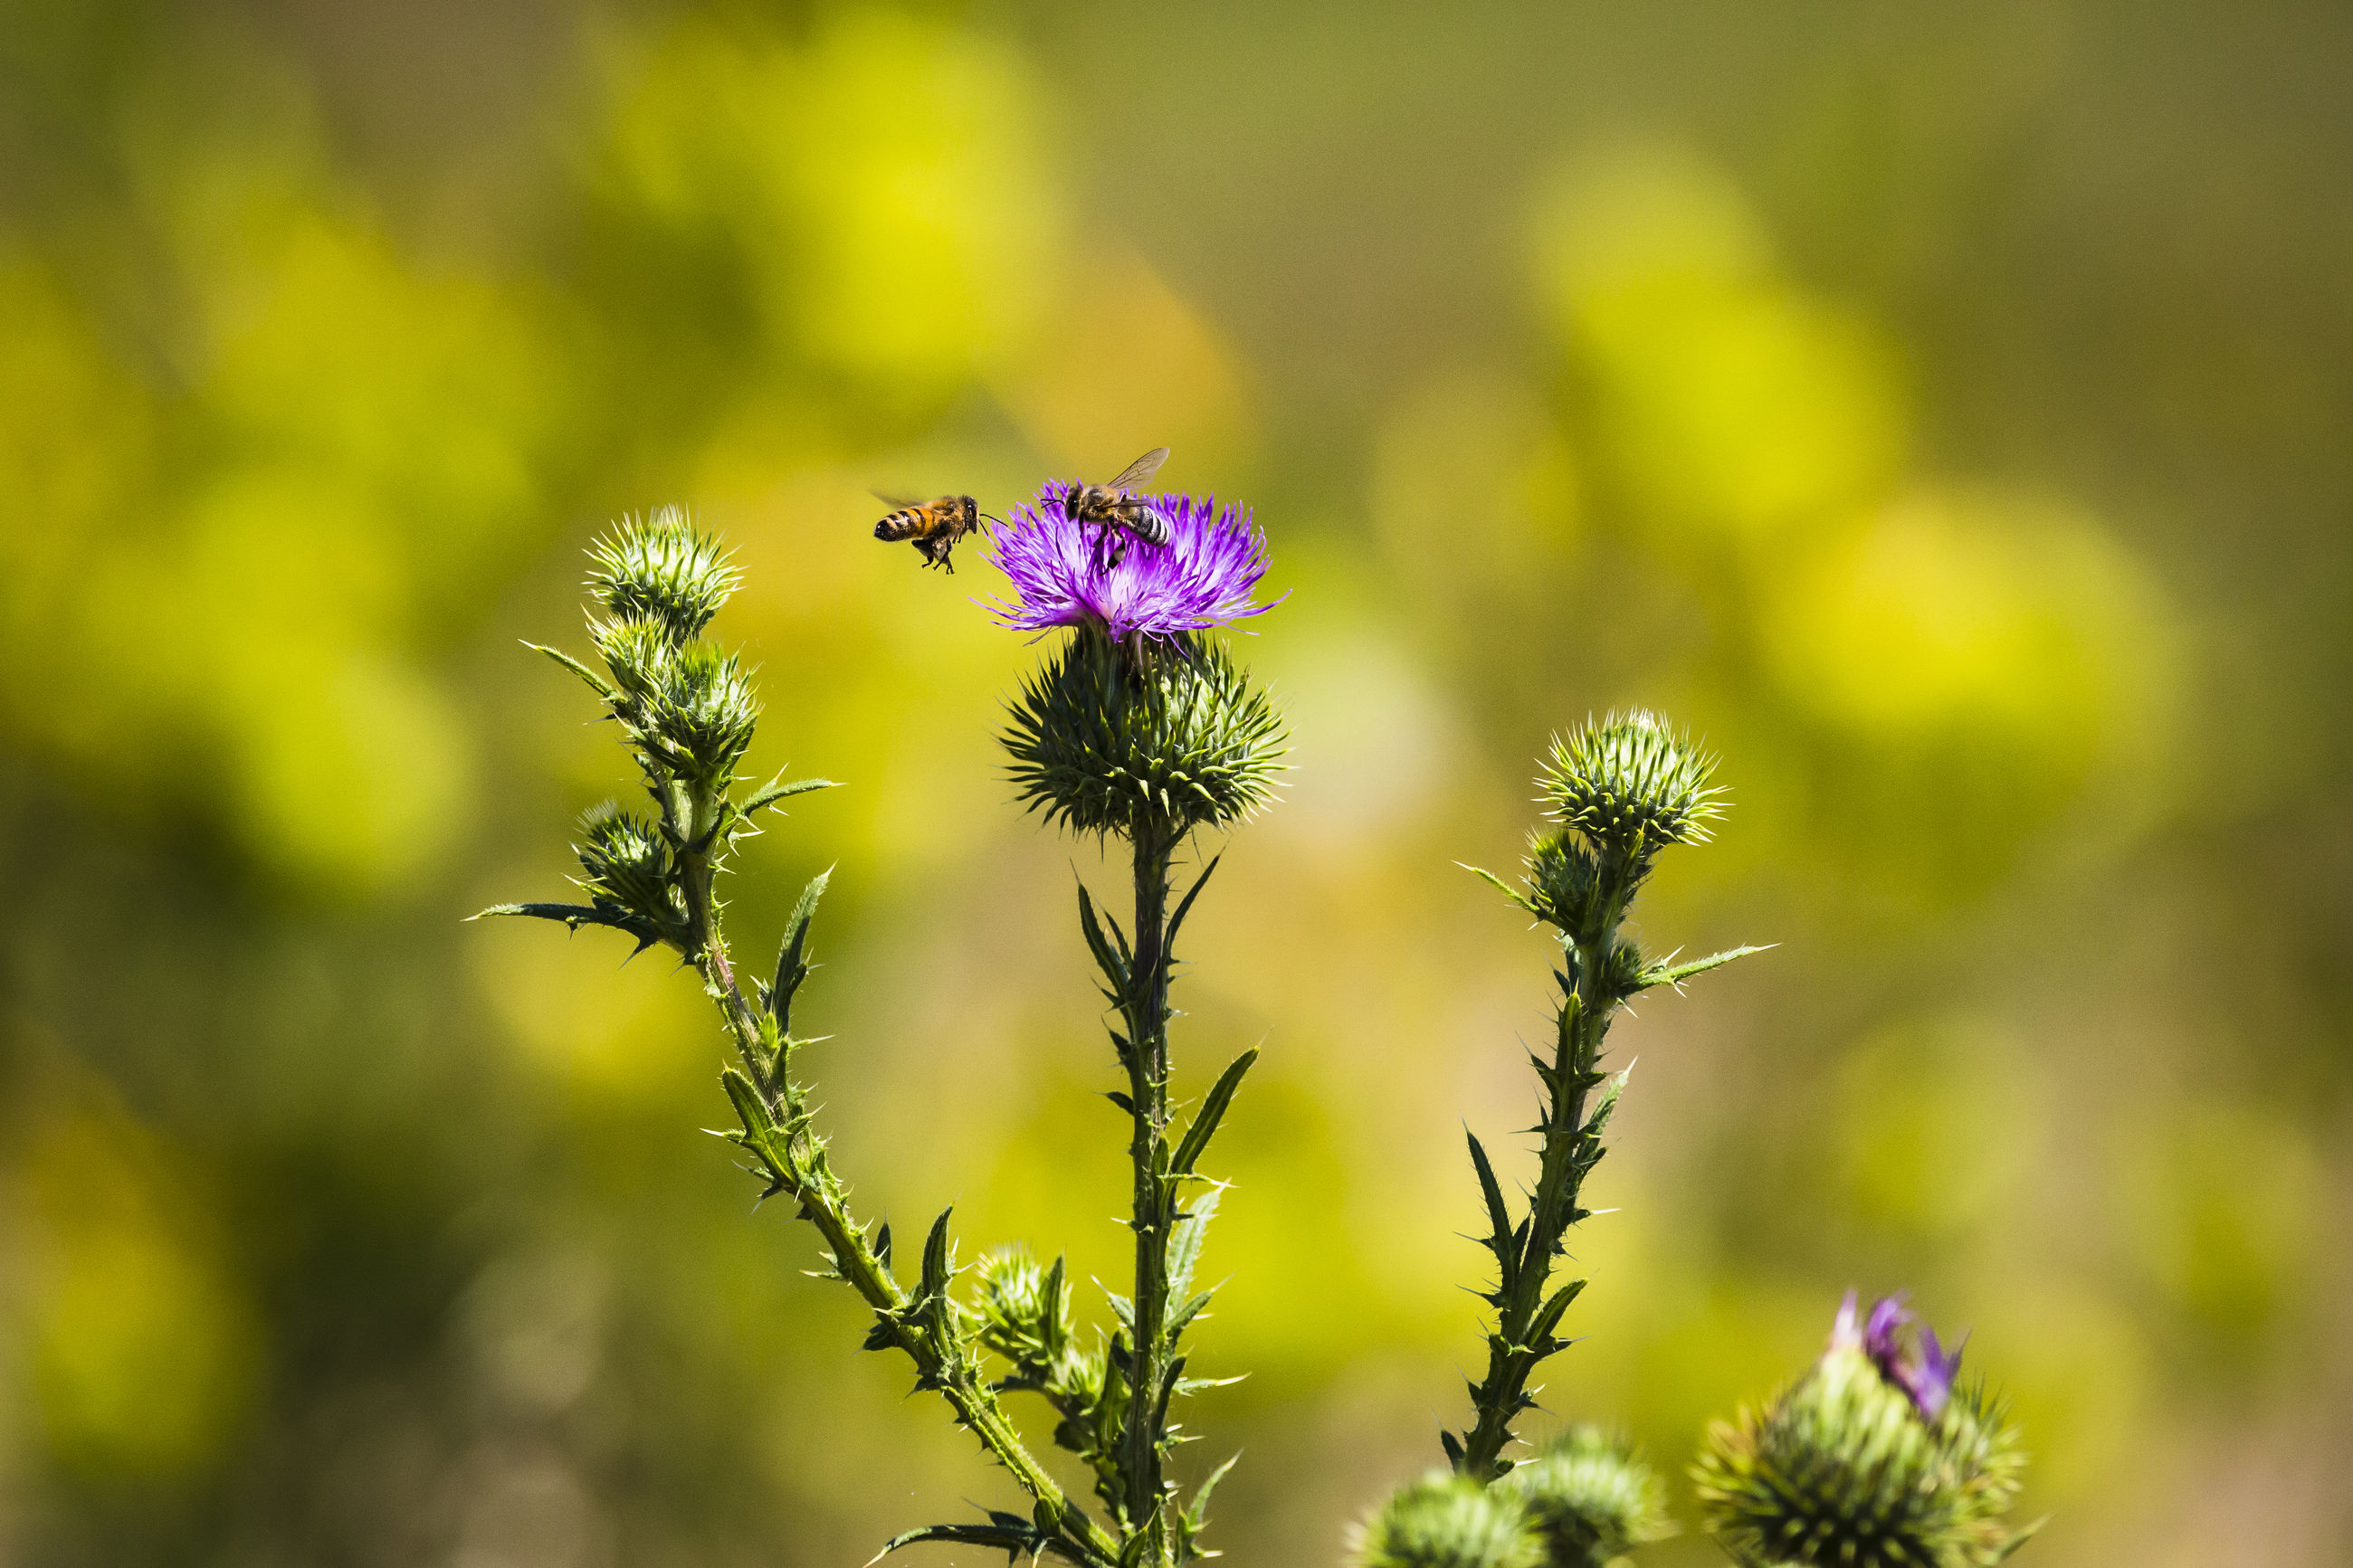 flower, nature, beauty in nature, insect, purple, animal themes, fragility, growth, one animal, petal, plant, animals in the wild, focus on foreground, day, outdoors, bee, no people, pollination, animal wildlife, freshness, close-up, yellow, blooming, flower head, buzzing